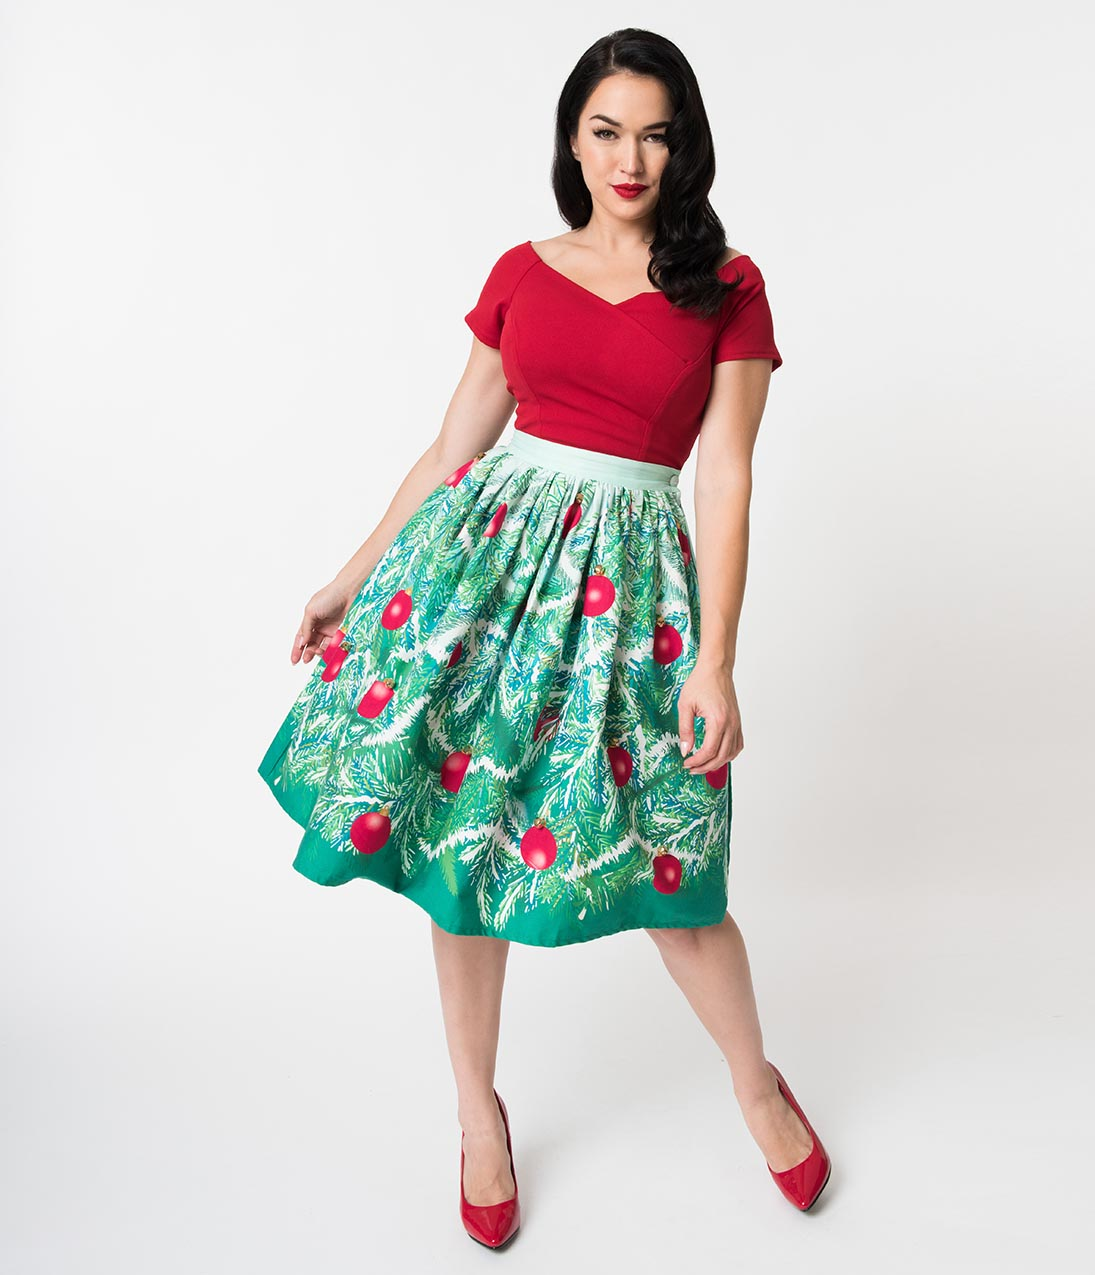 Vintage Christmas Dress | Party Dresses | Night Out Outfits Unique Vintage 1950S Style Jingle Bells Evergreen High Waist Swing Skirt $88.00 AT vintagedancer.com